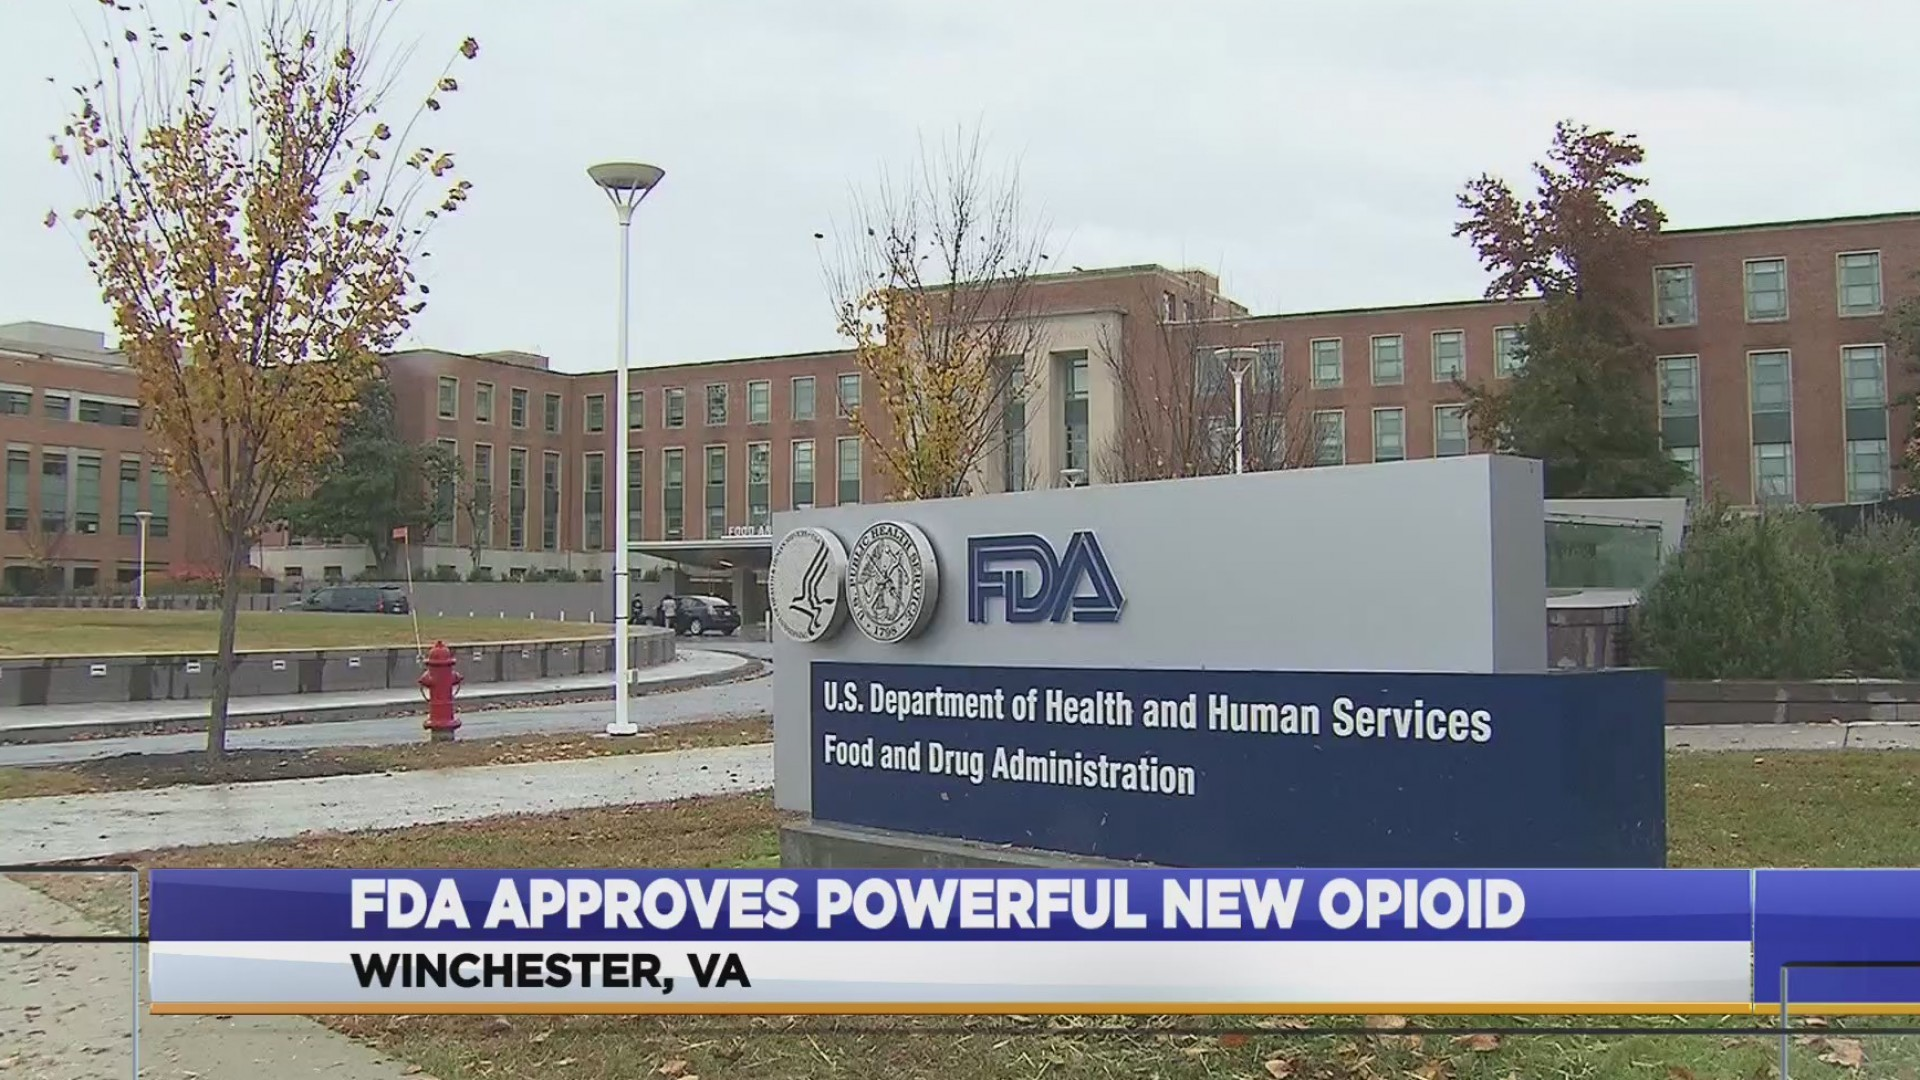 FDA_approves_new_opioid_0_20181105222700